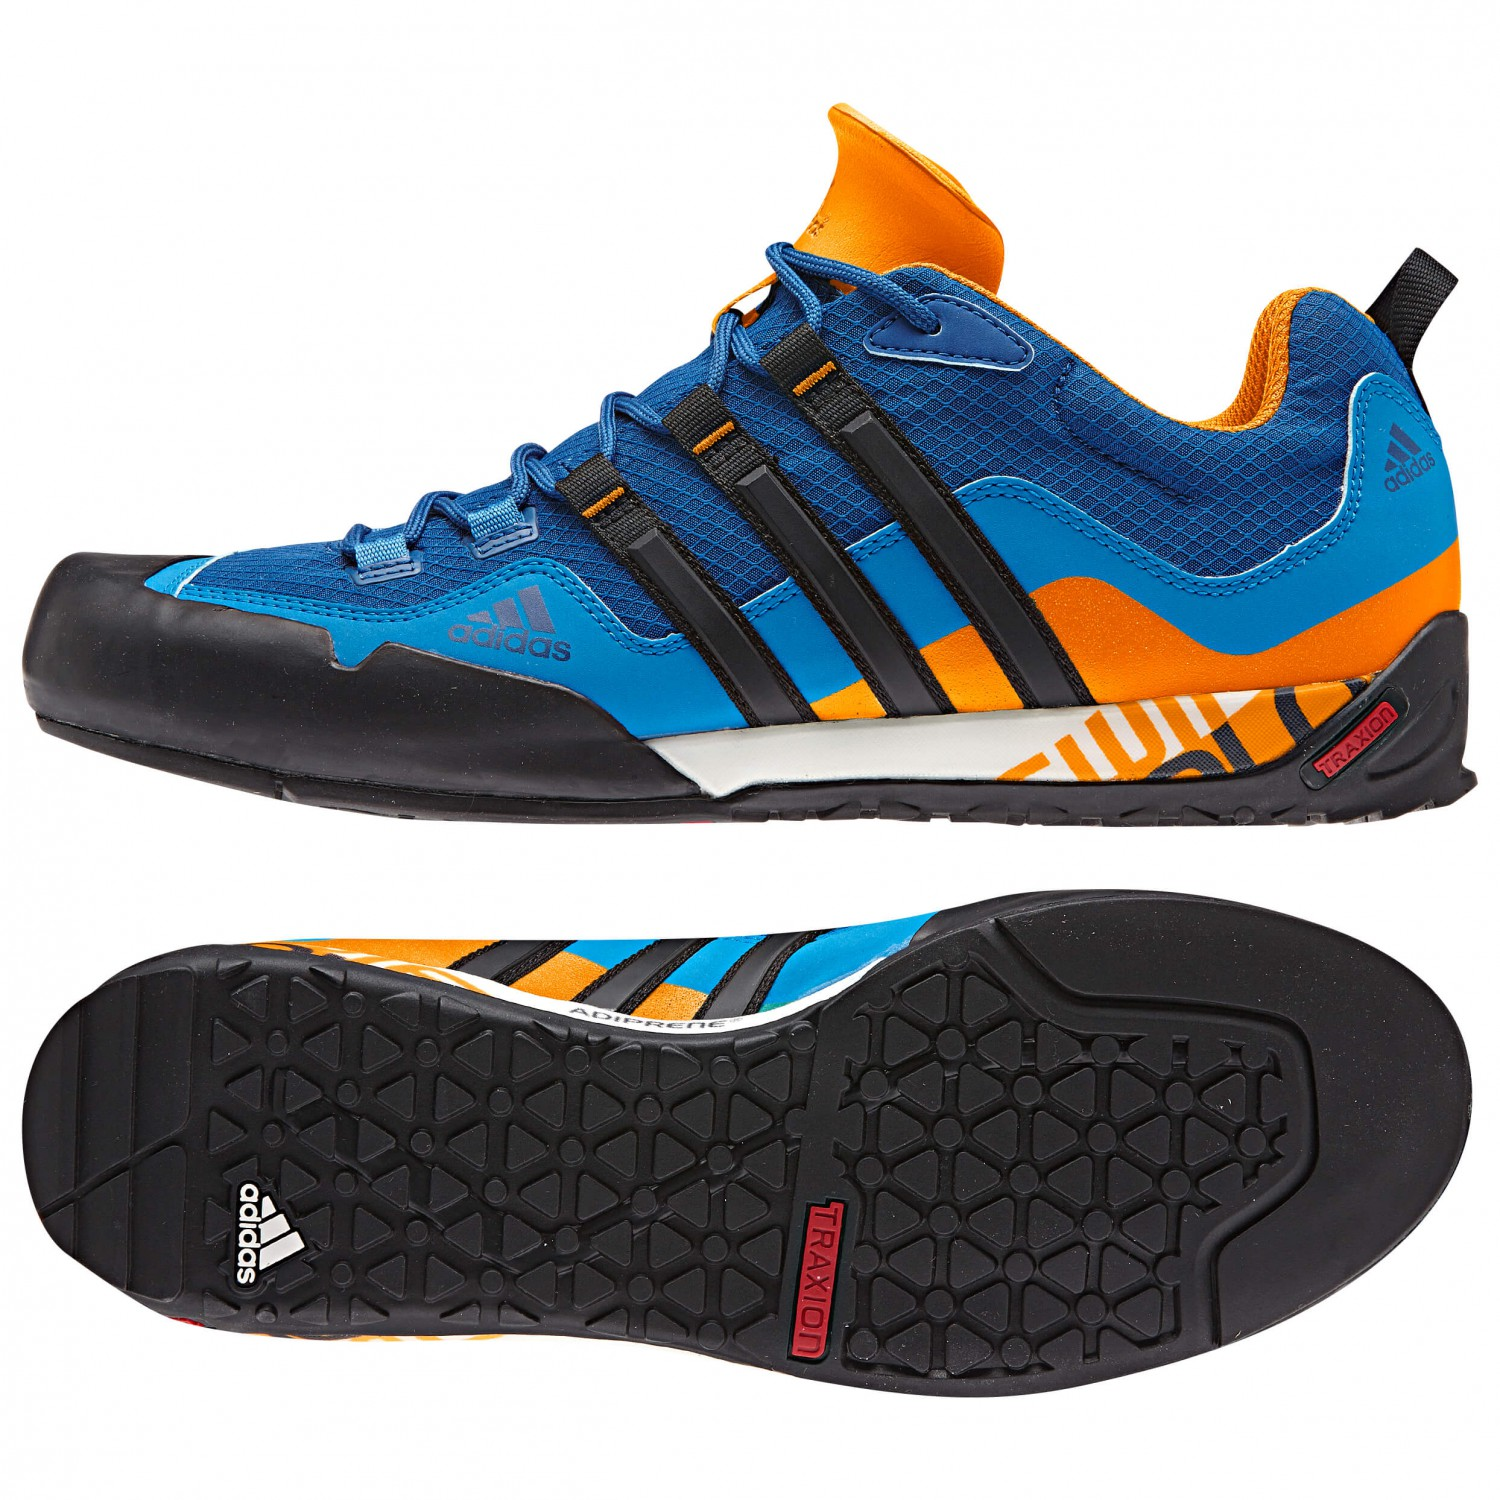 60d014f1eae2 Adidas Terrex Swift Solo - Approach Shoes Men s   Free UK Delivery    Alpinetrek.co.uk